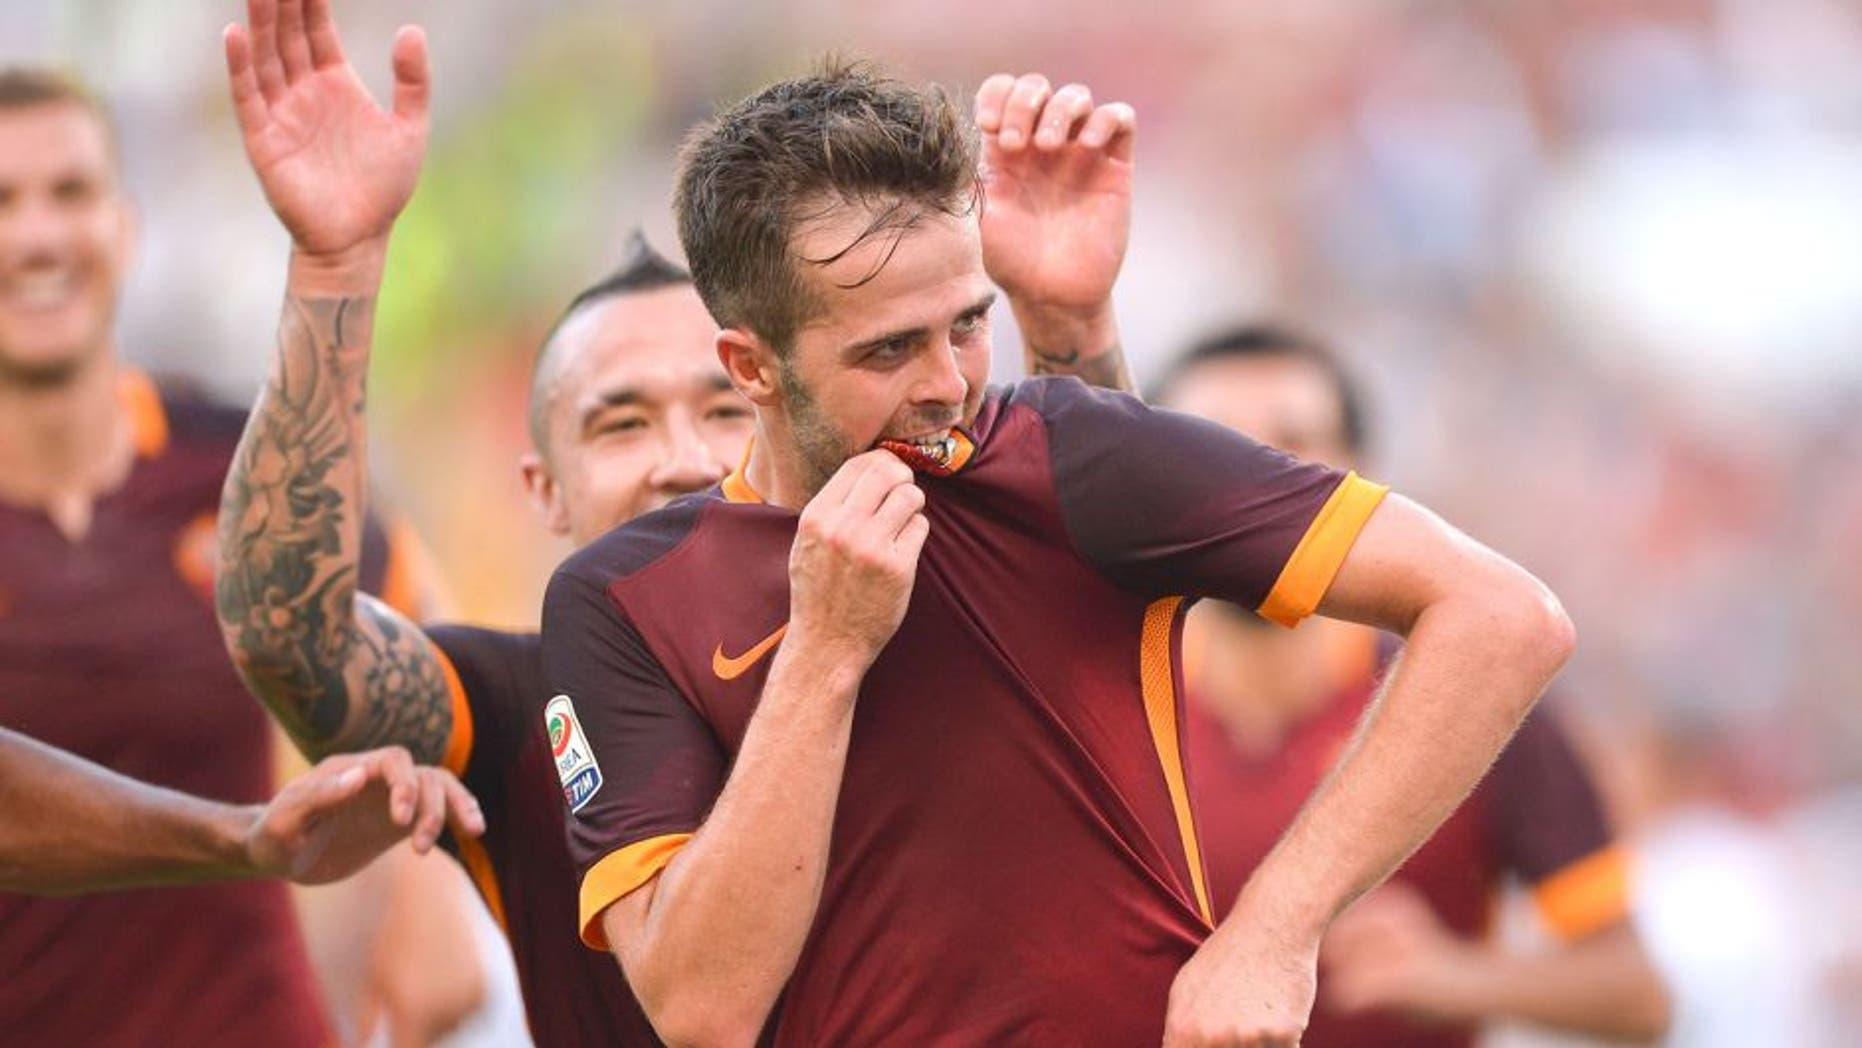 ROME, ITALY - AUGUST 30: AS Roma Player Miralem Pjanic celebrates the goal during the Serie A match between AS Roma and Juventus FC at Stadio Olimpico on August 30, 2015 in Rome, Italy. (Photo by Luciano Rossi/AS Roma via Getty Images)